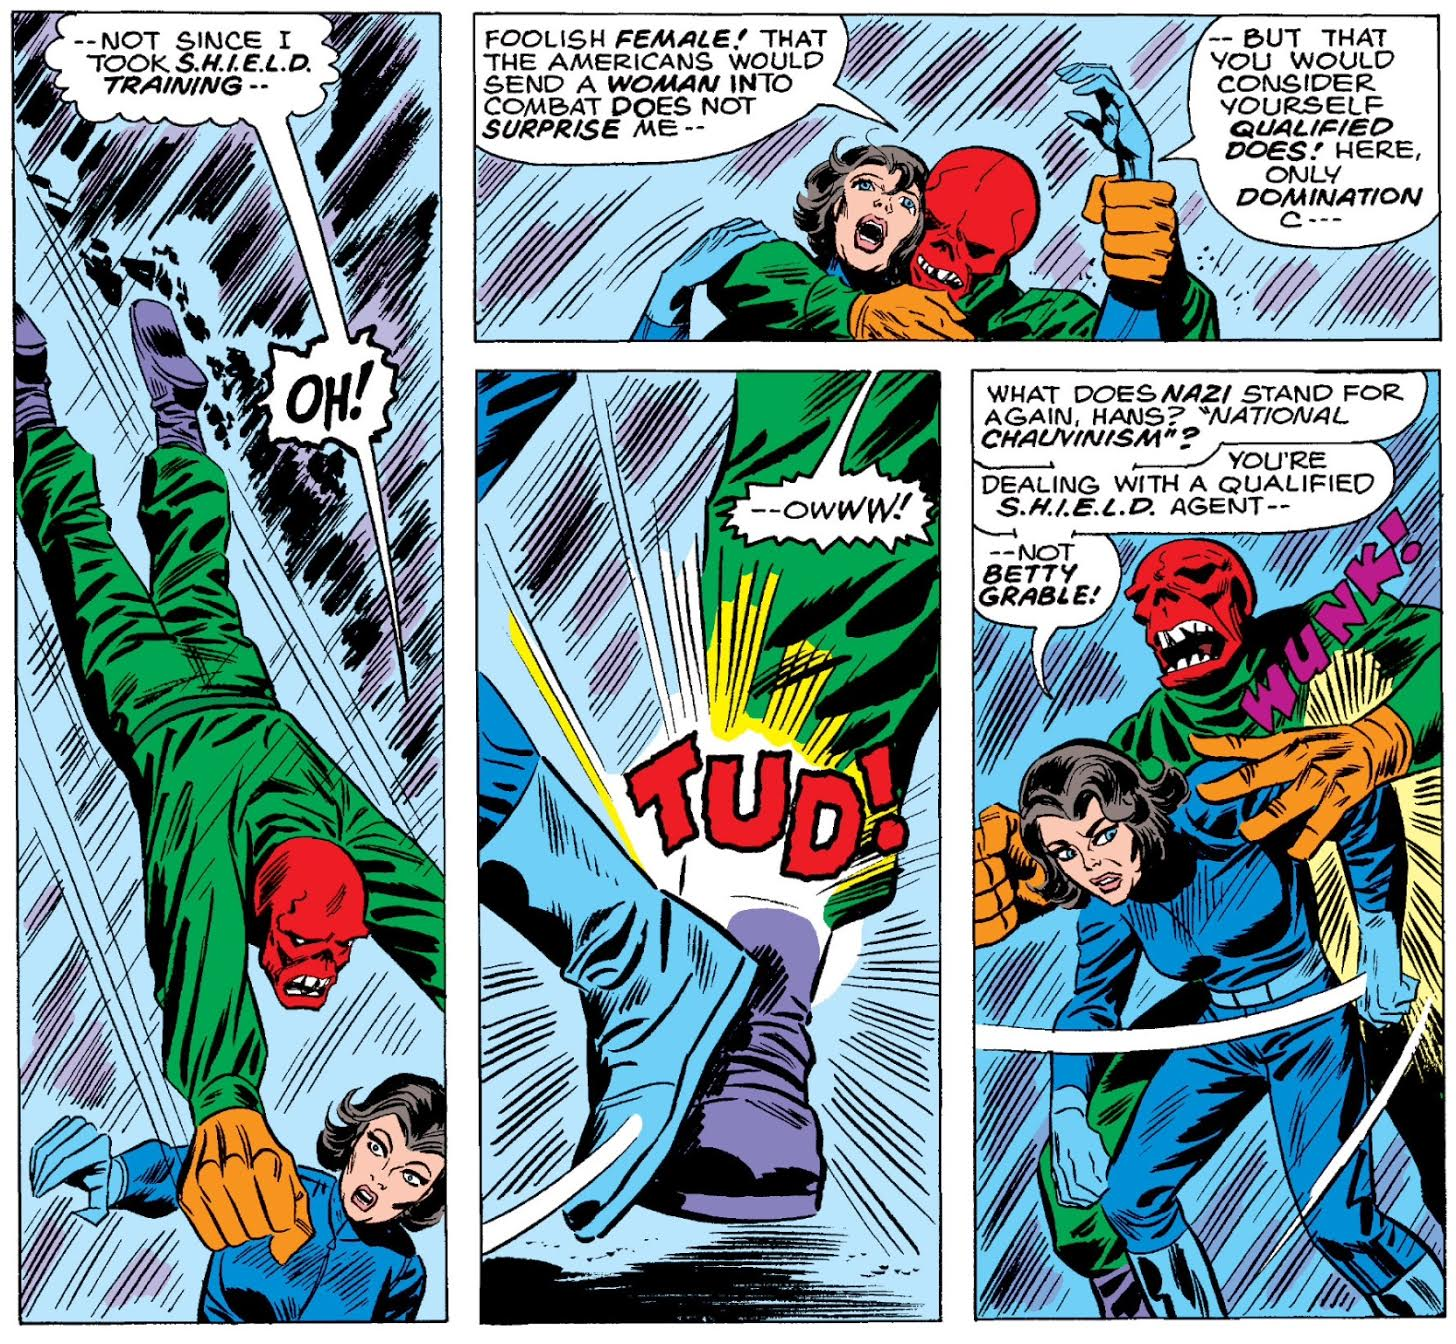 Art by Herb Trimpe, Inking by Frank Giacoia, and Coloring by George Roussos